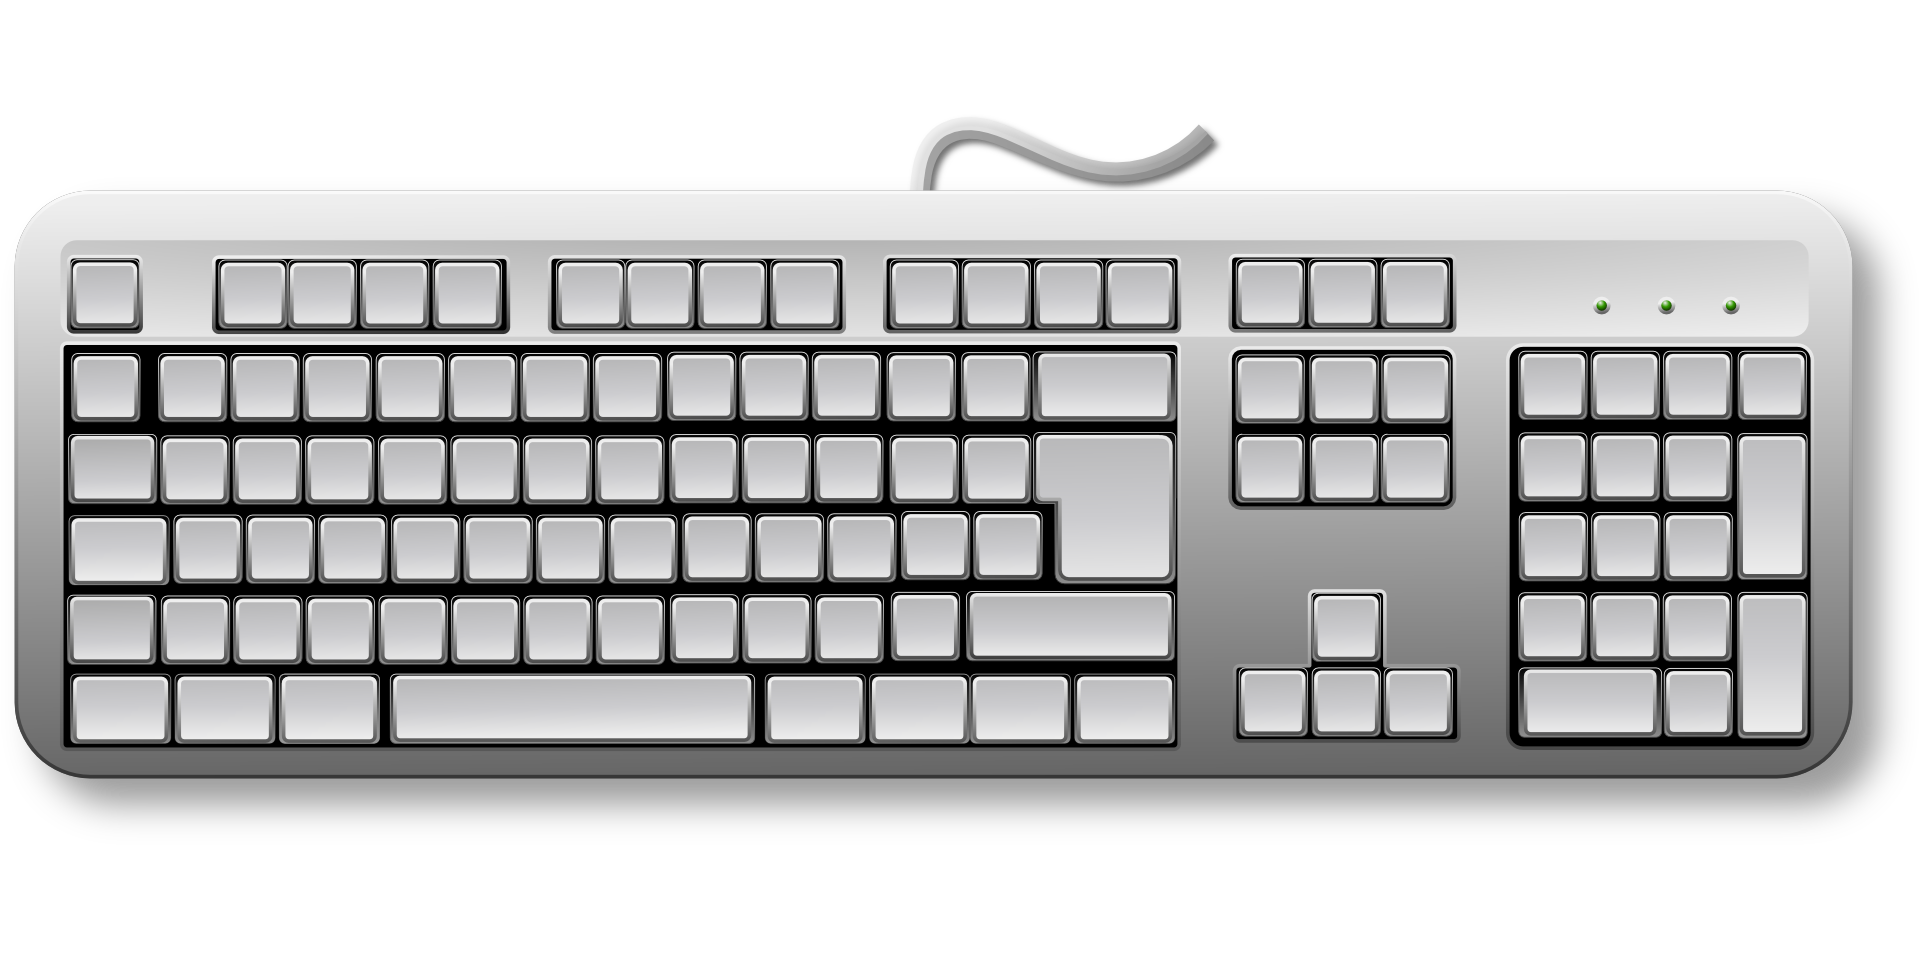 Computer keyboard keys clipart image library stock Keyboard keys computer hardware black white drawing free image image library stock